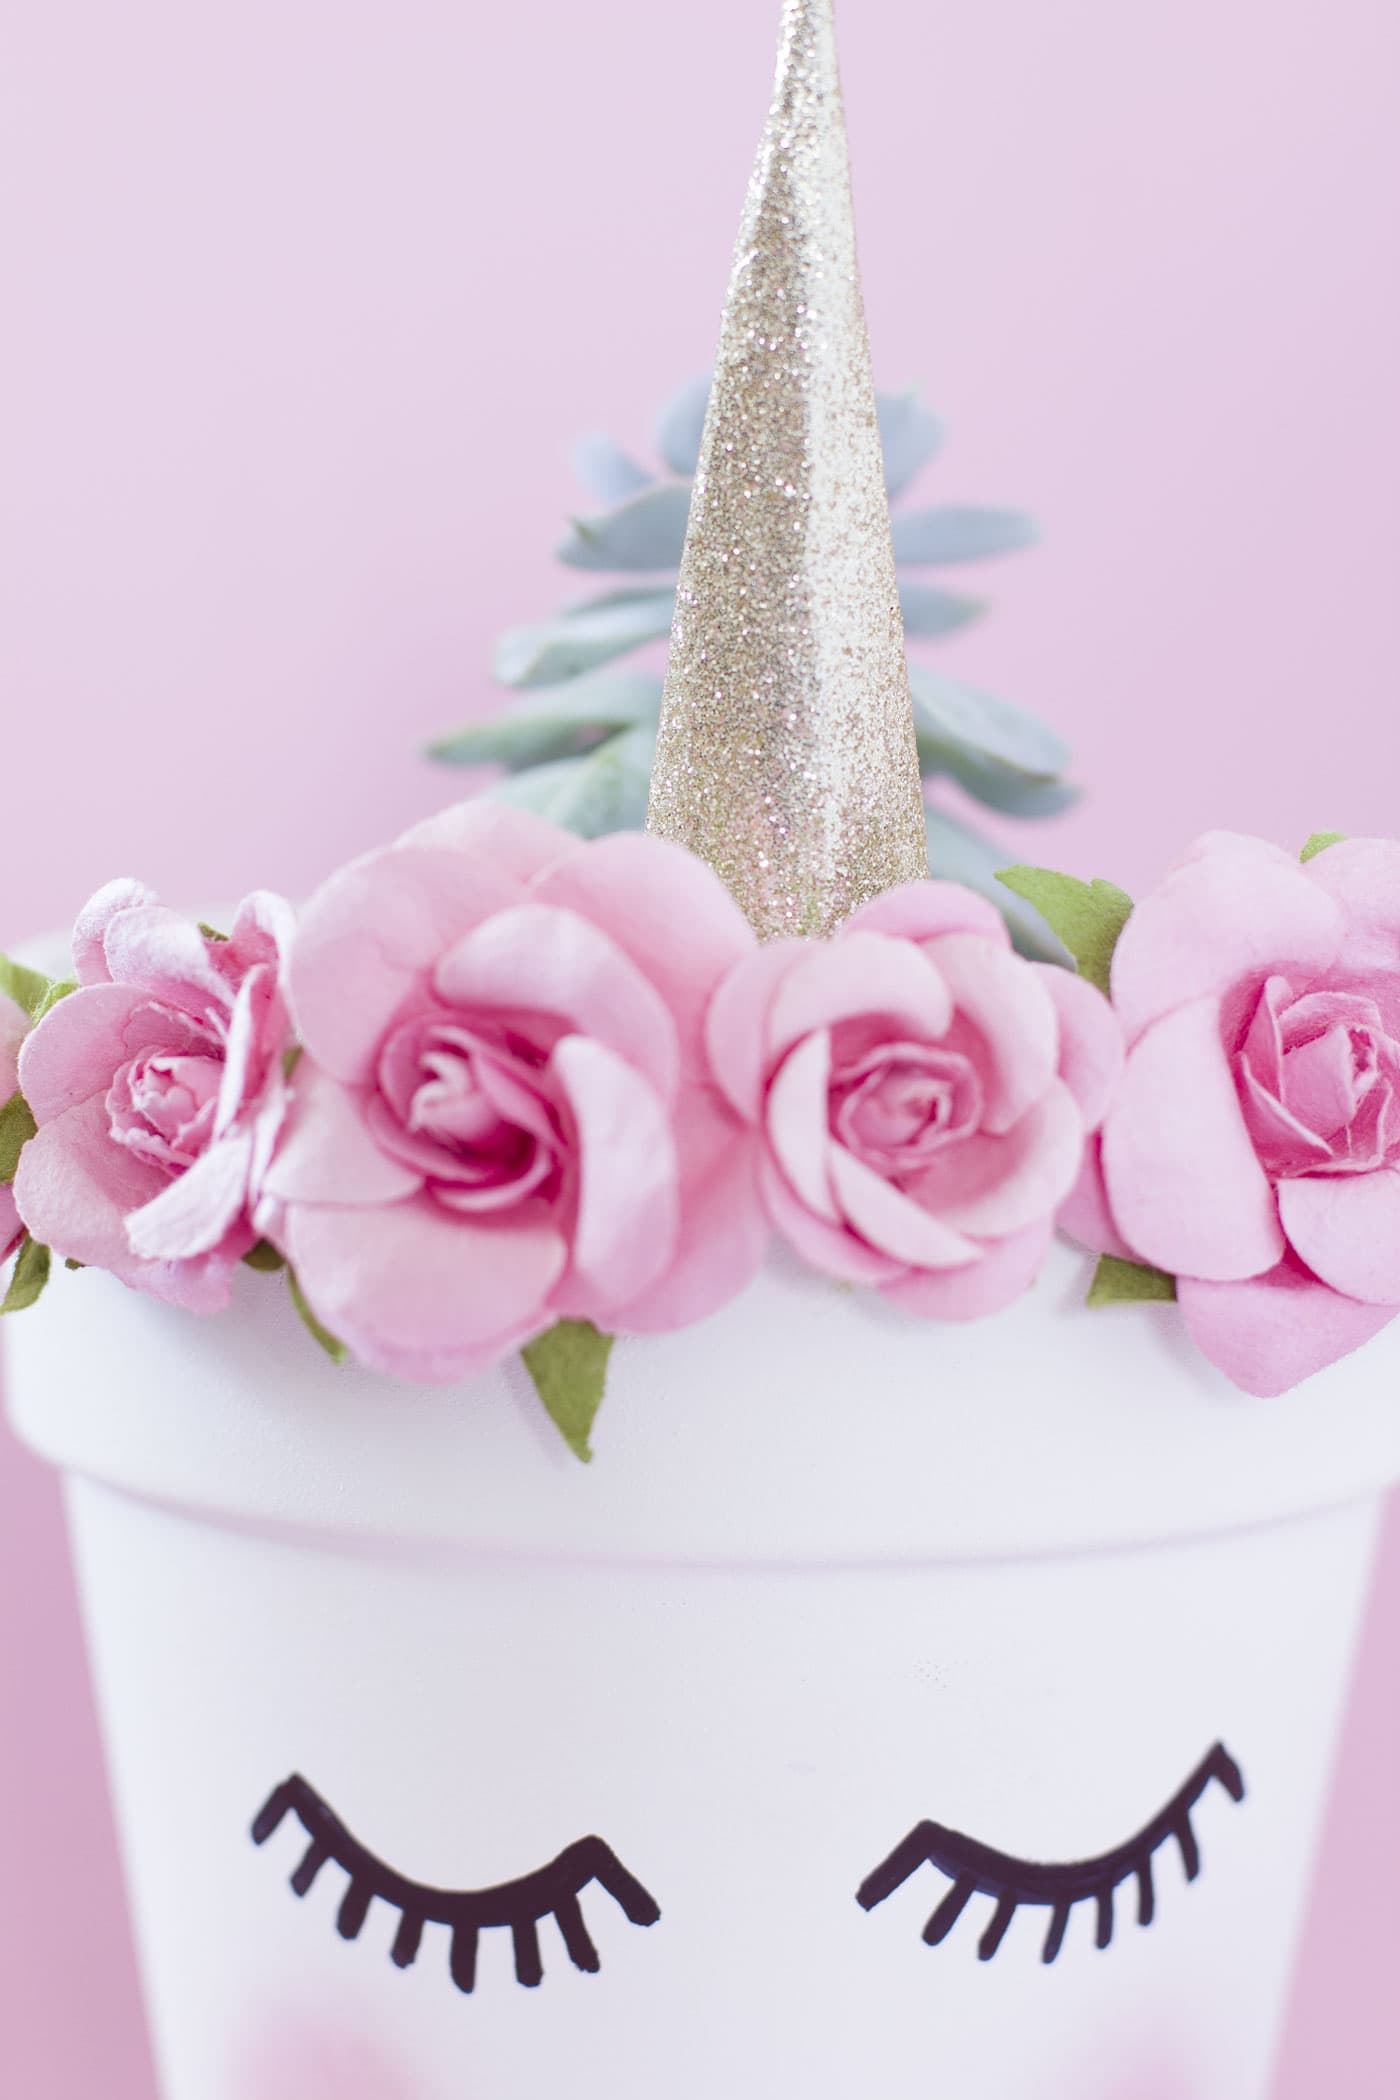 Diy Unicorn Planter Best Friends For Frosting